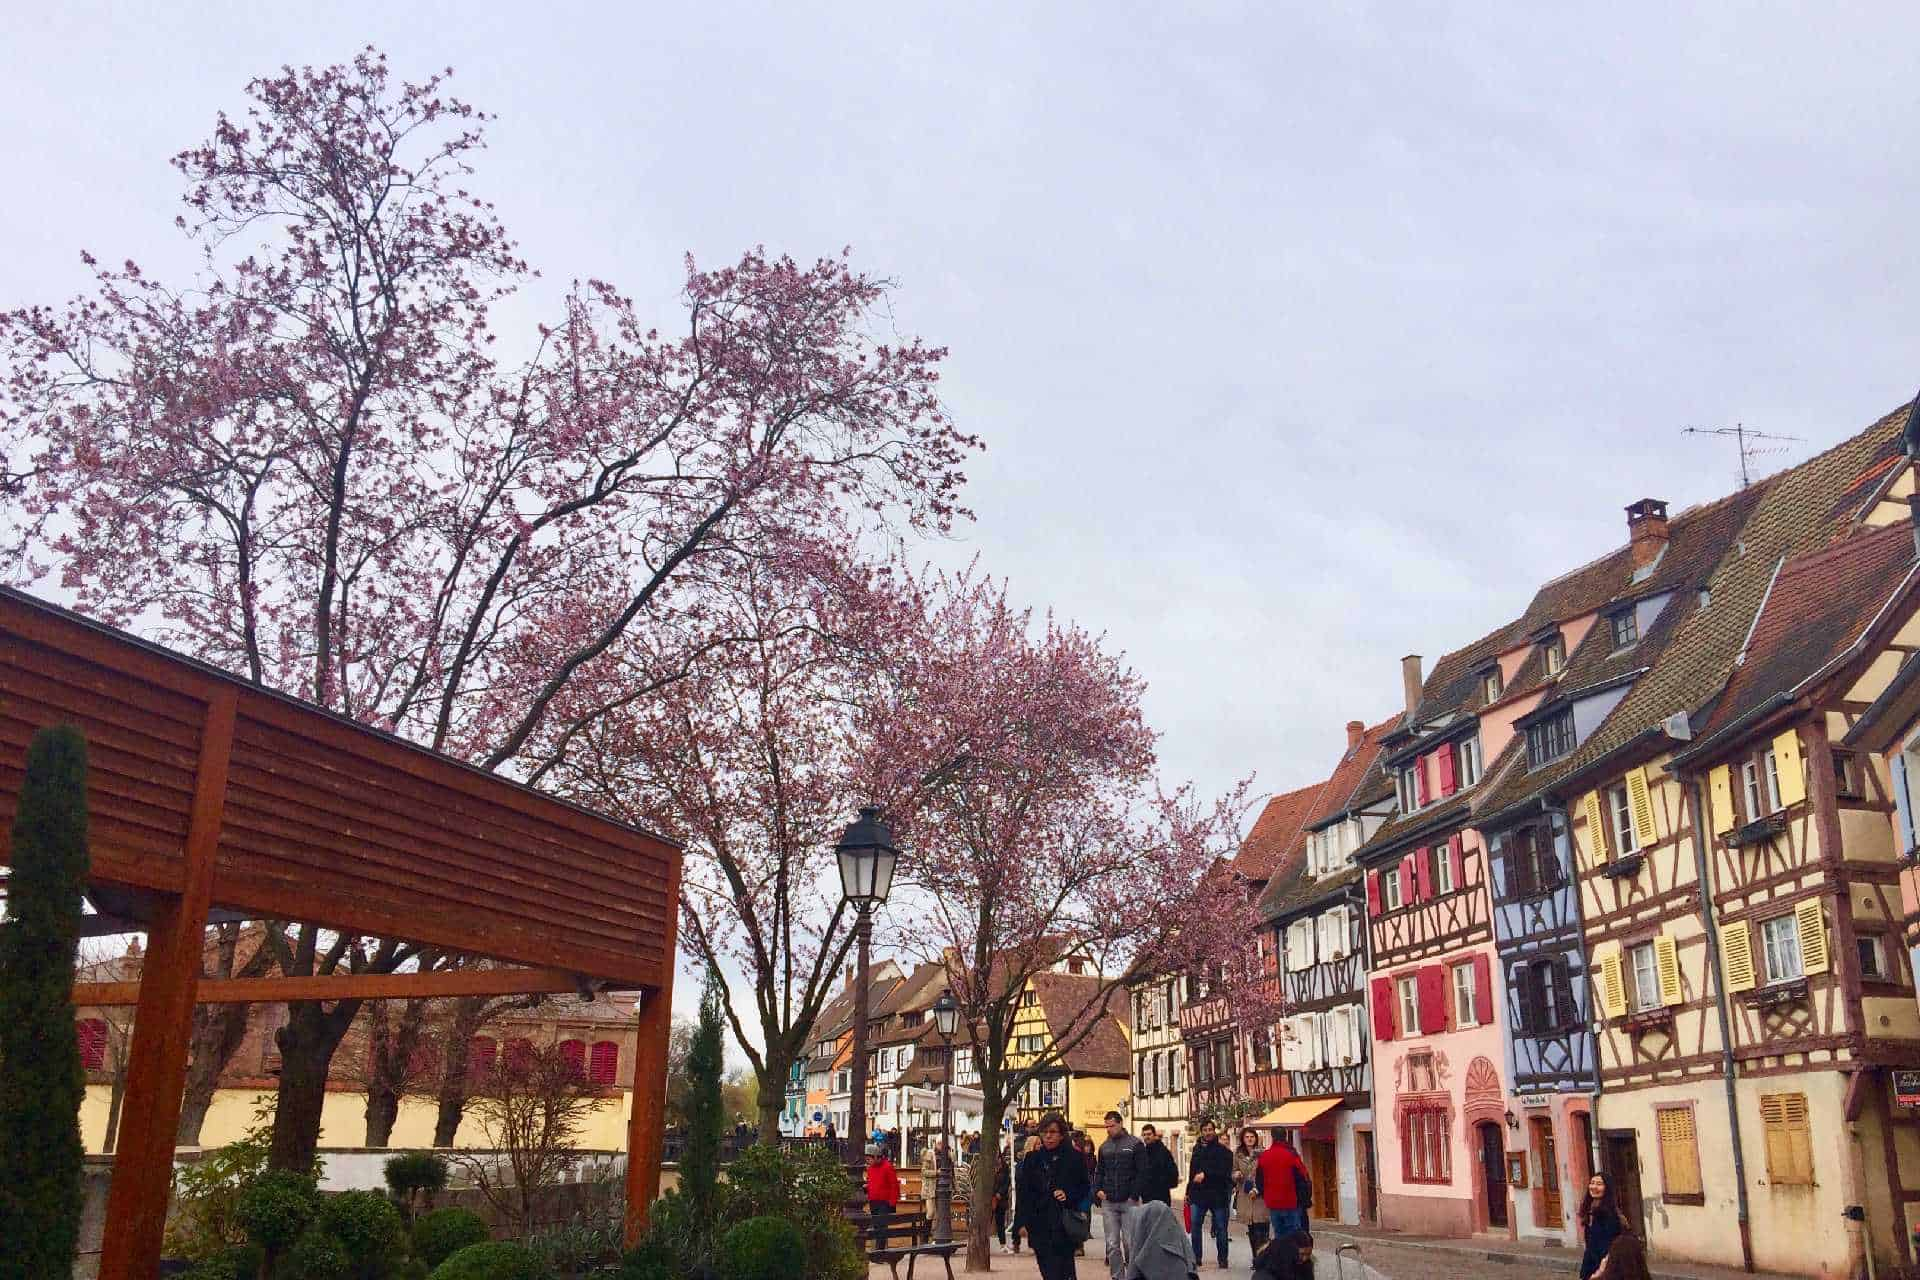 Cherry blossoms near Easter day in Petite Venise Colmar